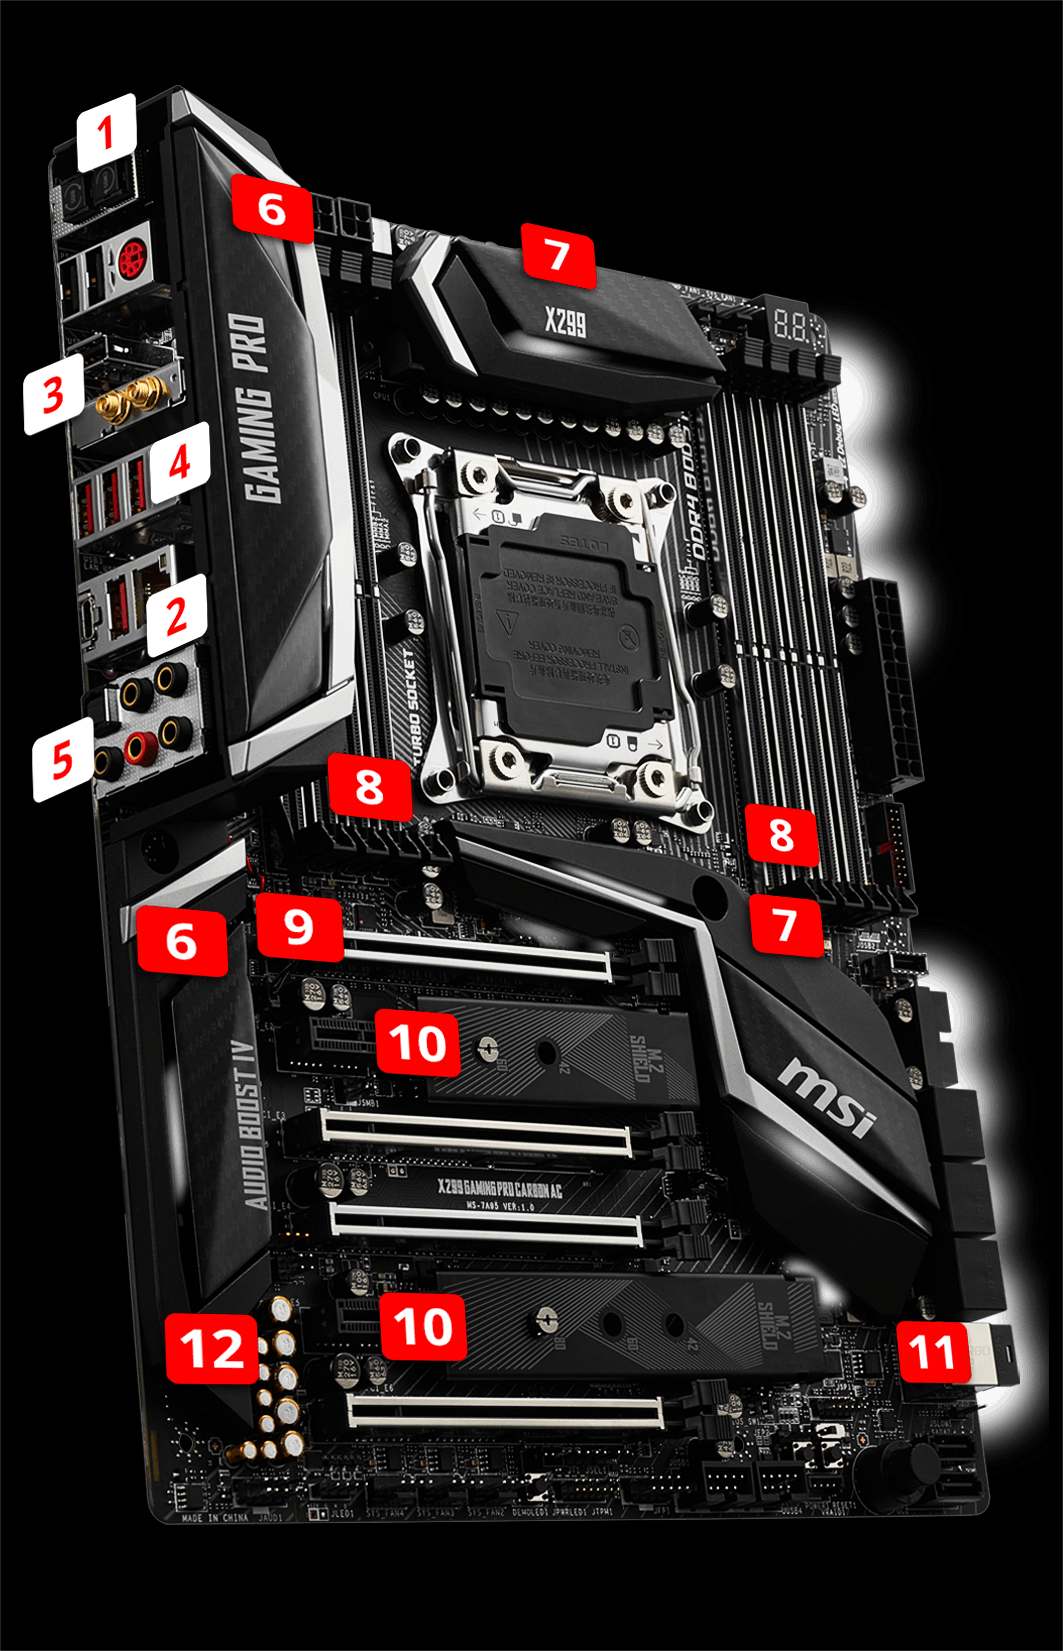 16GB X299 Gaming PRO Carbon AC Memory Ram Compatible with MSI Motherboard X299 Gaming M7 ACK X299 SLI Plus by CMS c112 2X8GB X299 Raider